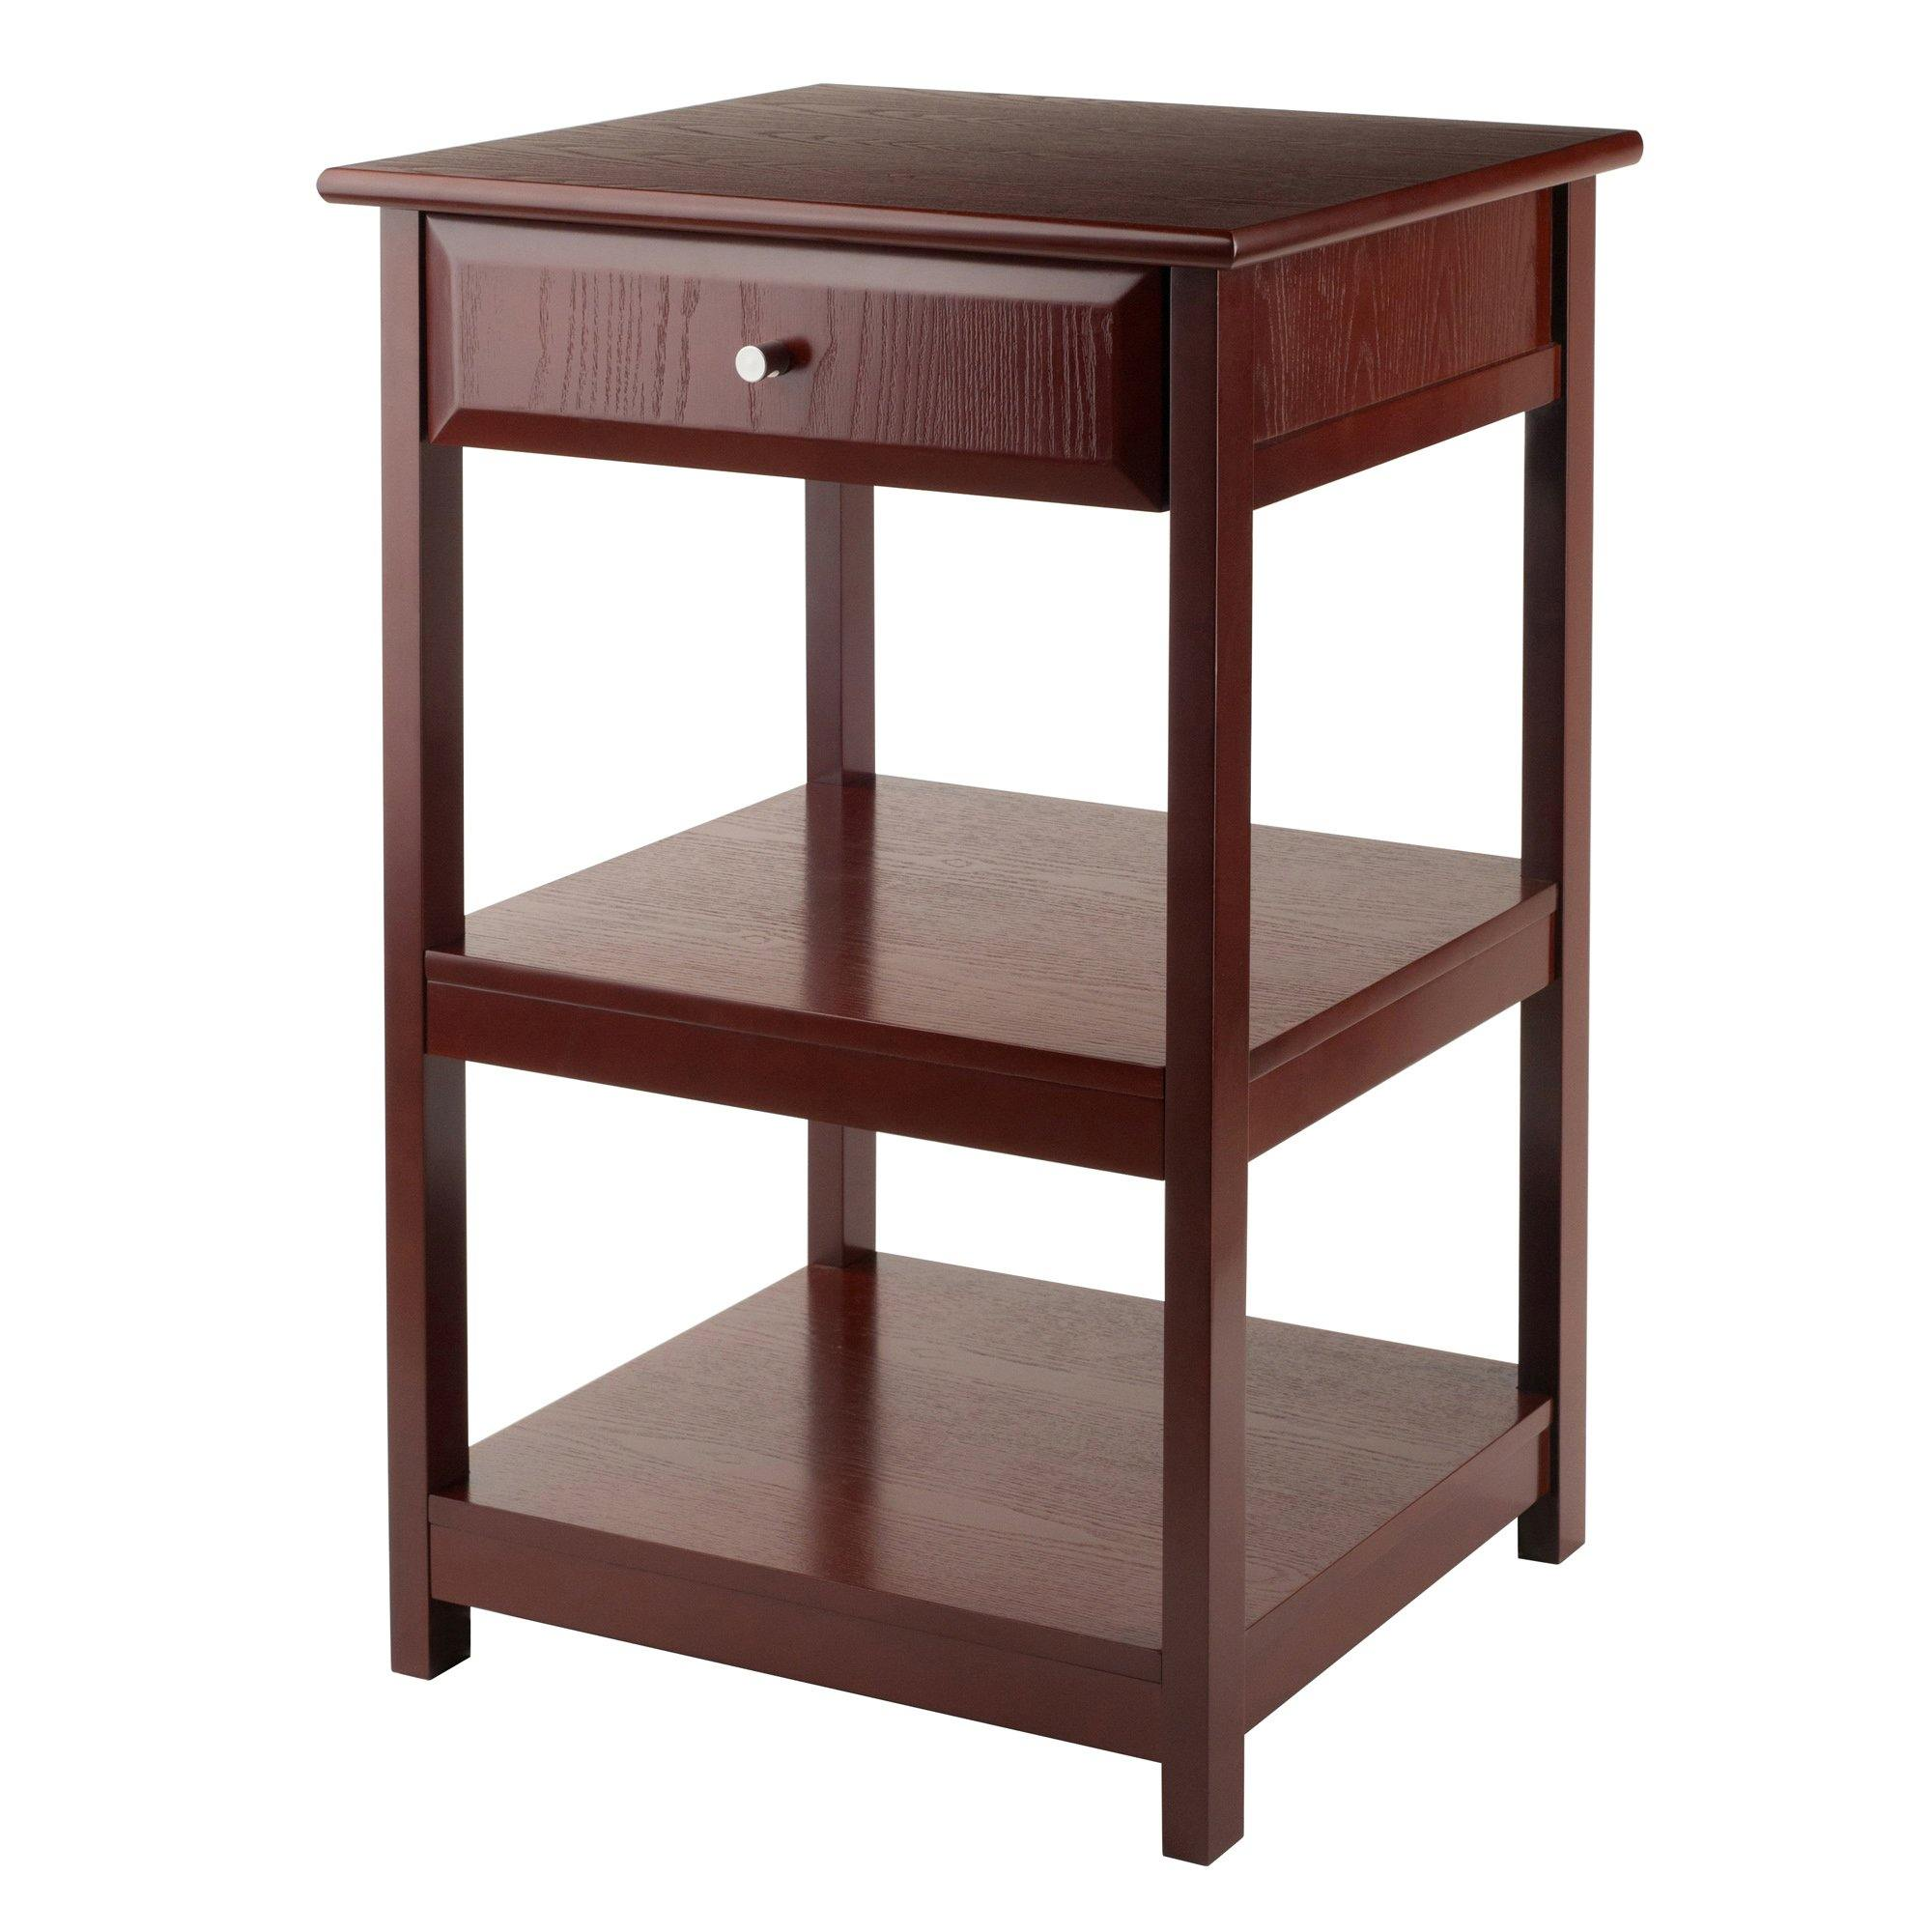 Delta Printer Table Walnut - My USA Furniture